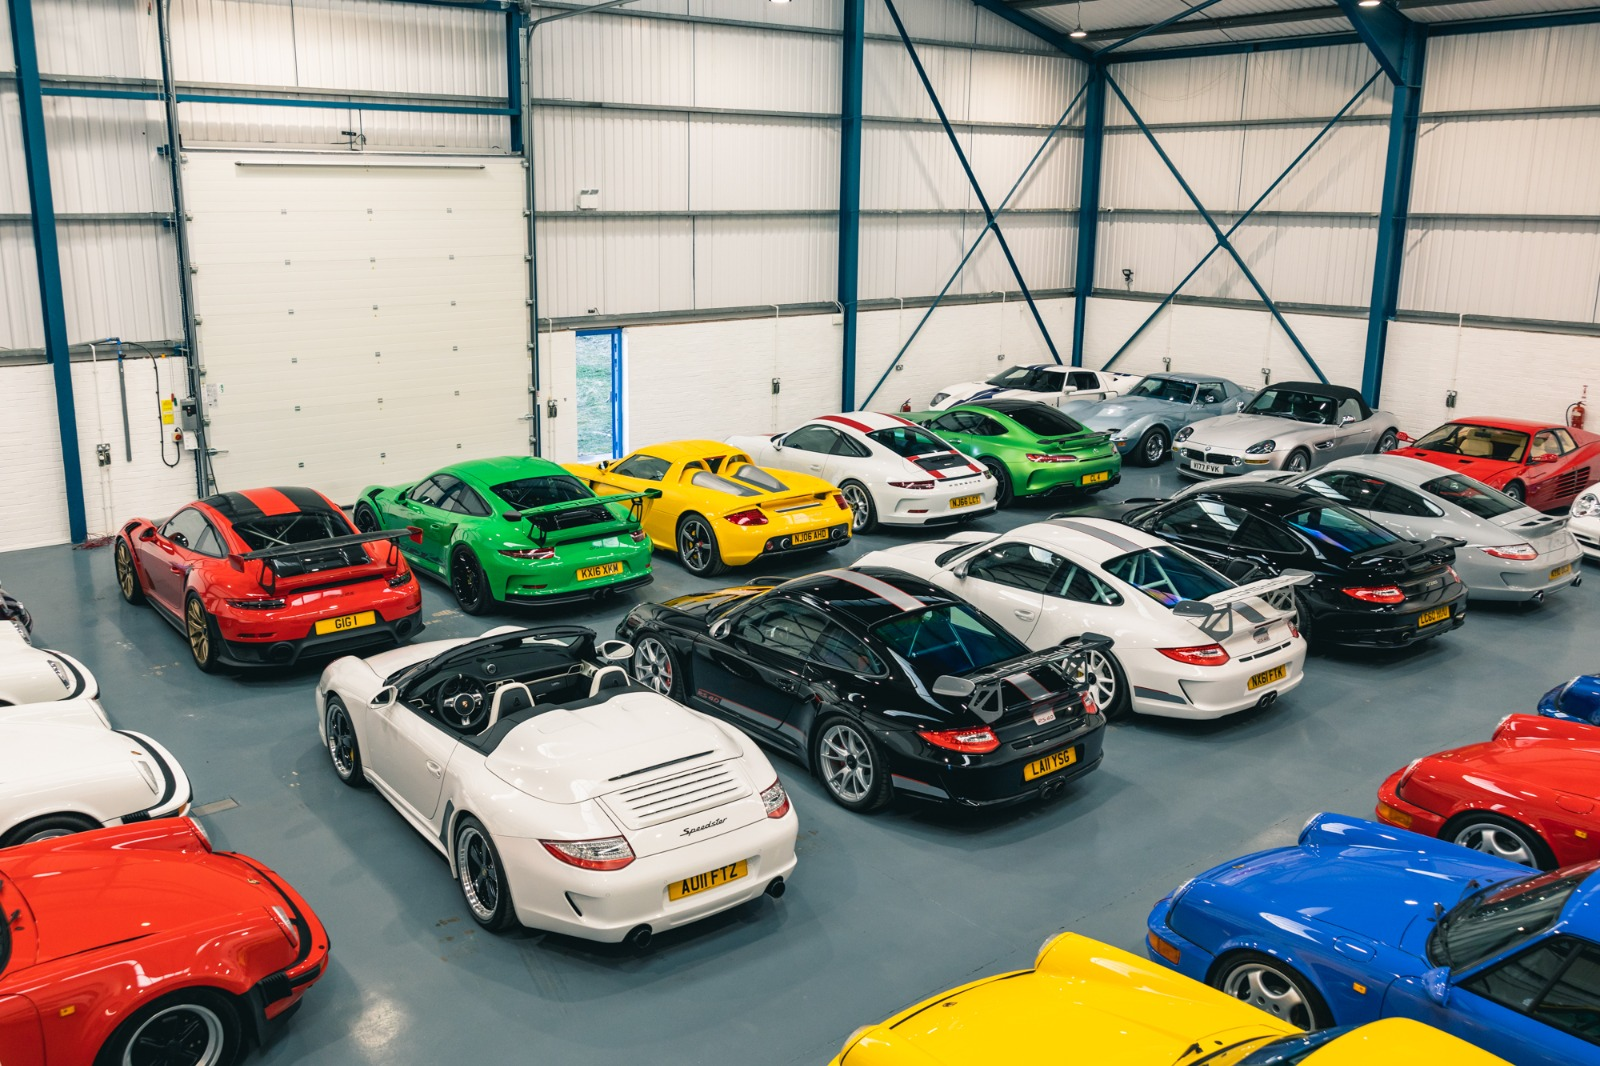 THE LEONARD COLLECTION: LIVE ON COLLECTING CARS